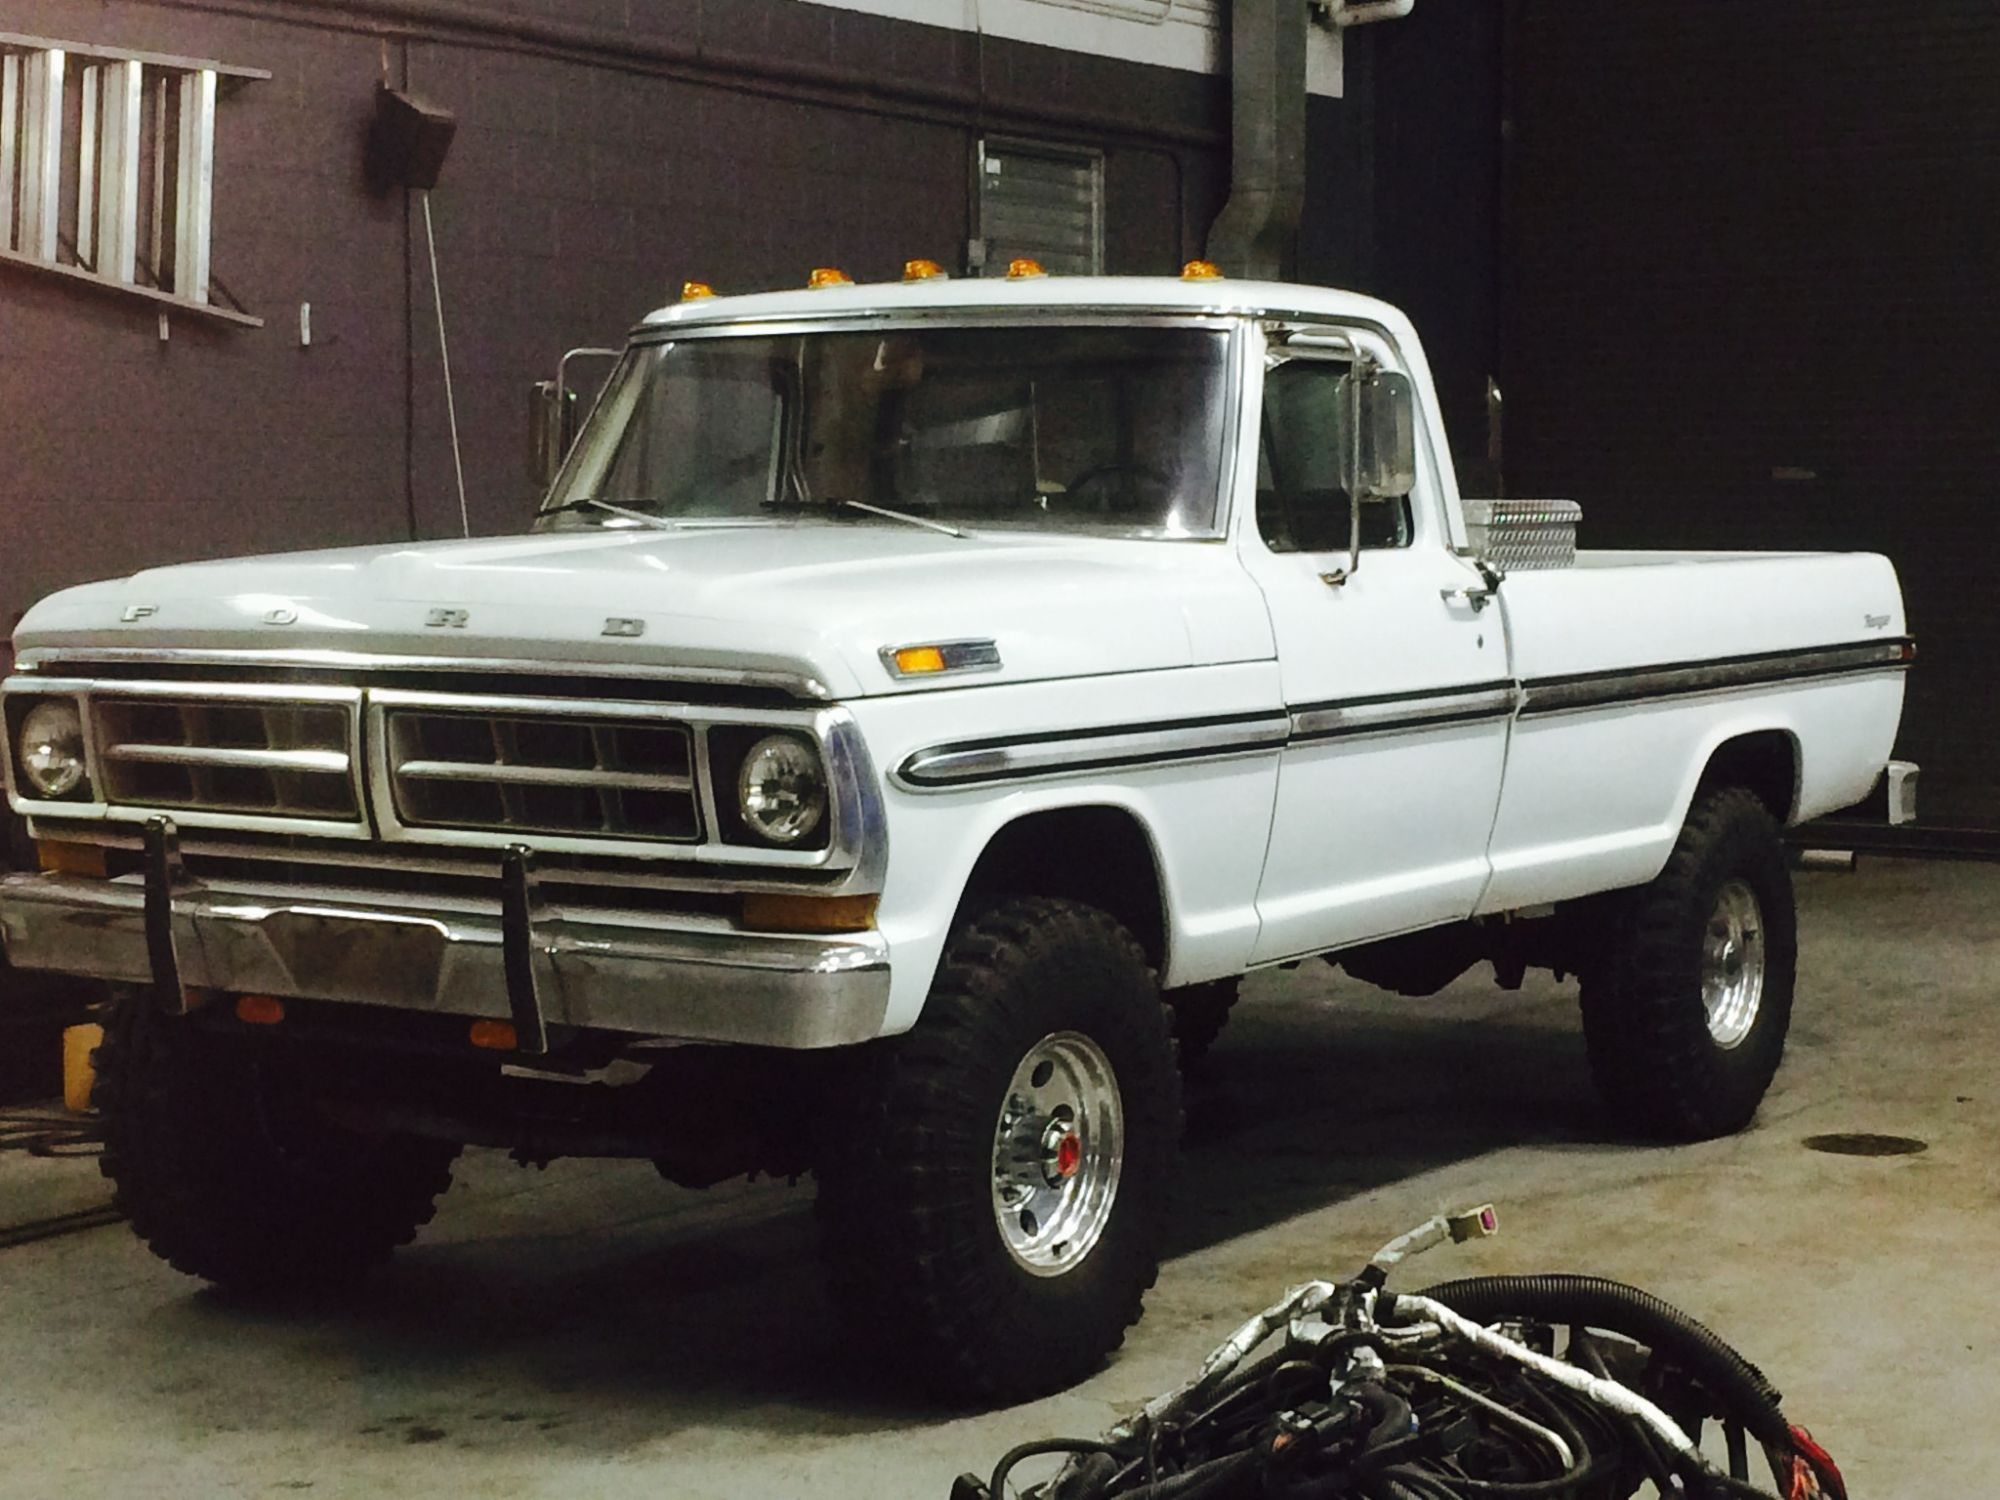 67-72 lifted 4x4 pics. :] - Page 10 - Ford Truck Enthusiasts Forums ...